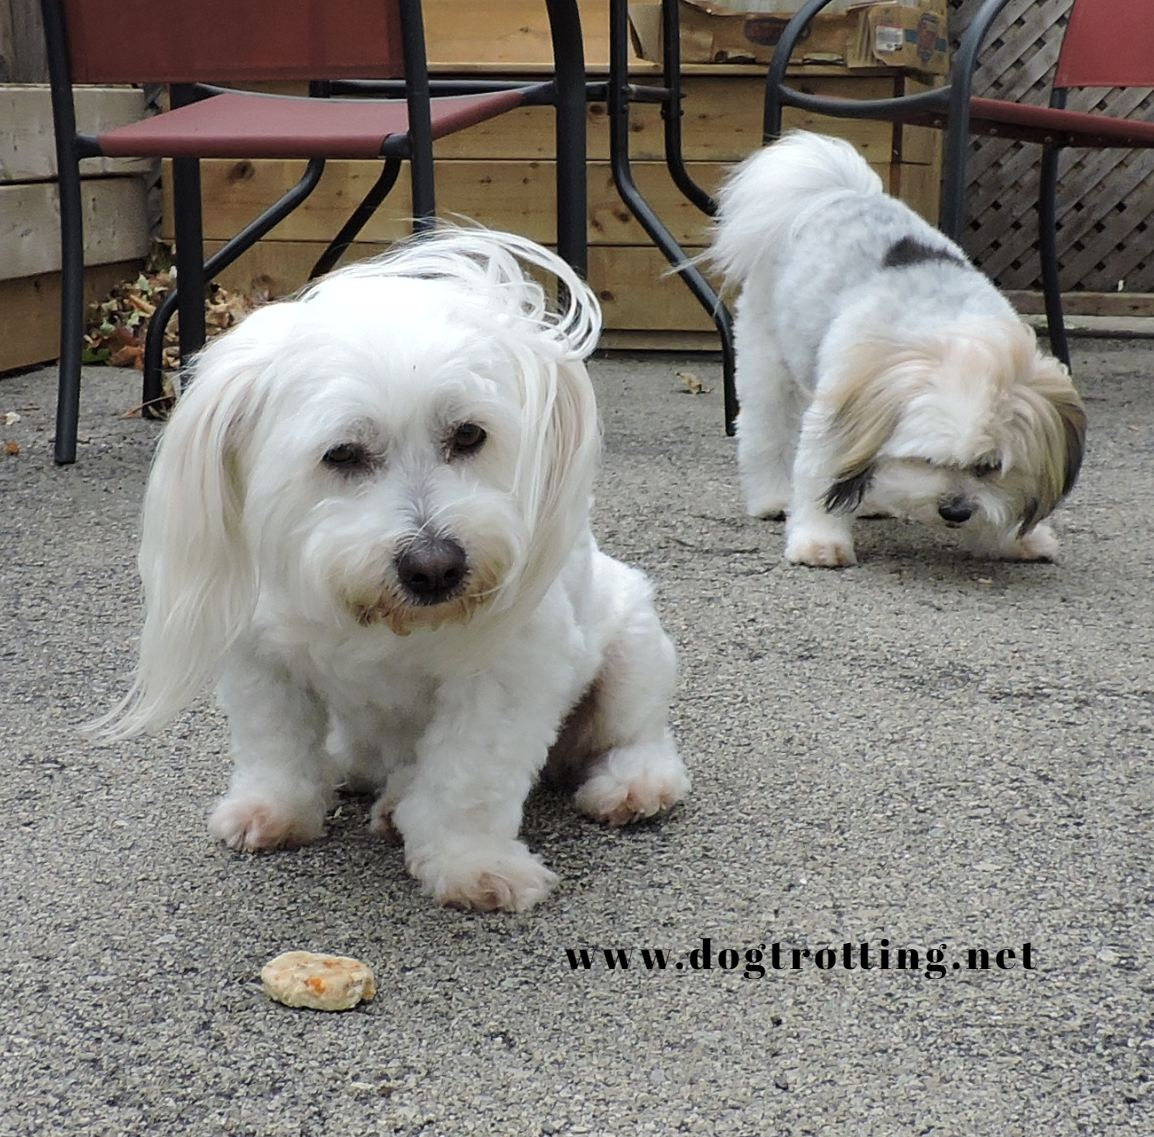 two white dogs outside eating dog treats